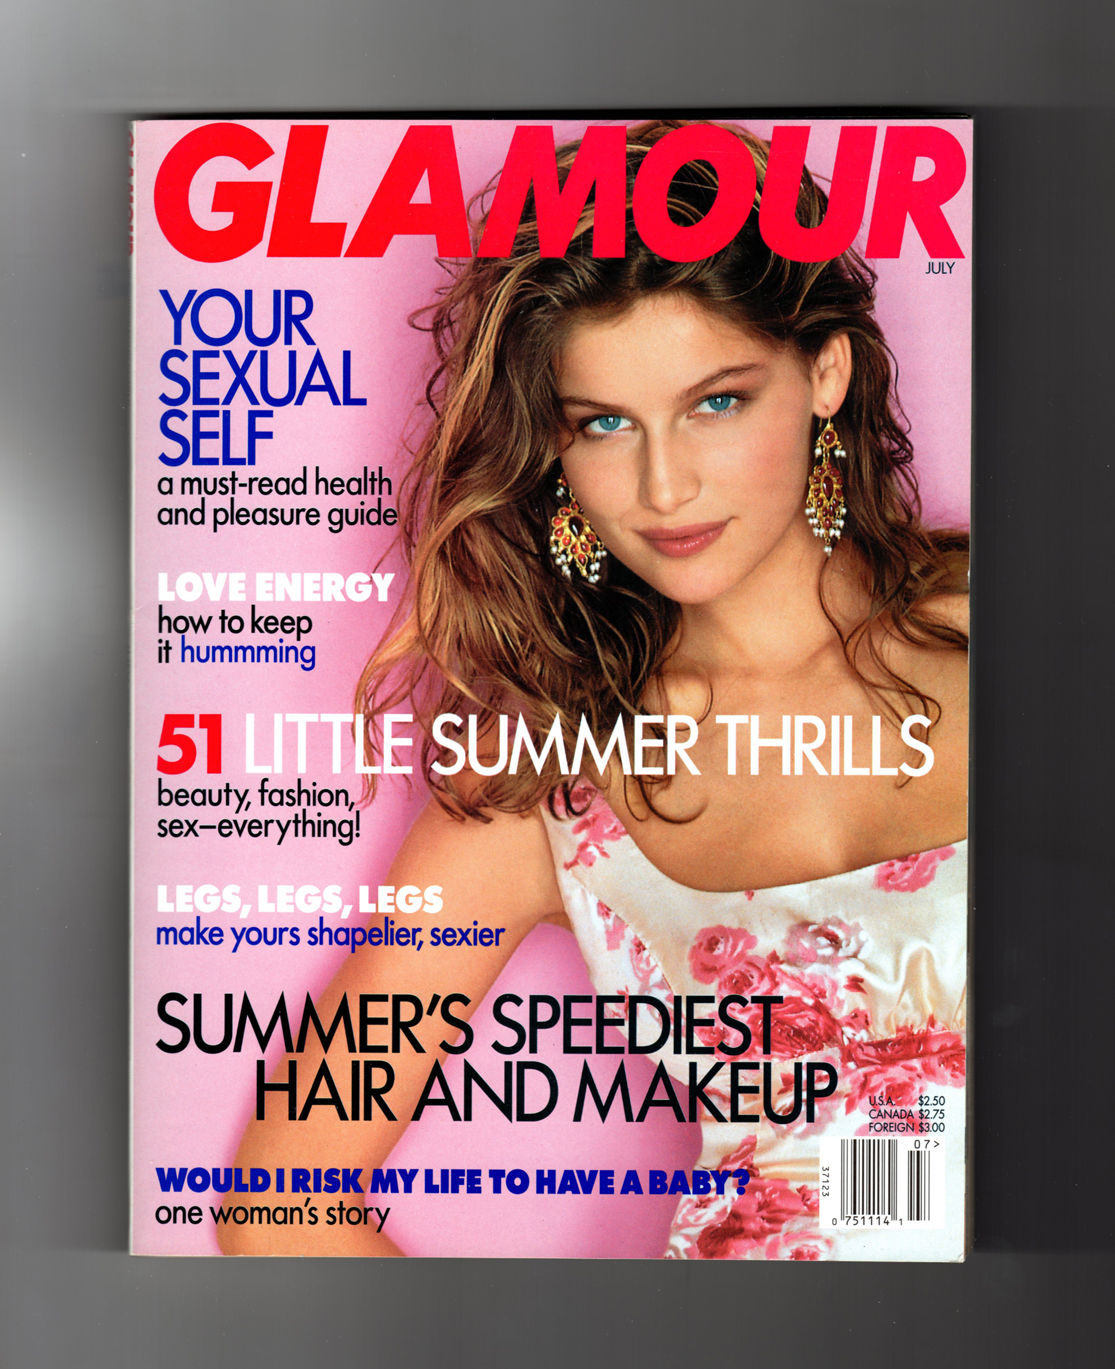 Glamour Magazine July 1997 Laetitia Casta Cover Sexual Self Love Energy 51 Summer Thrills